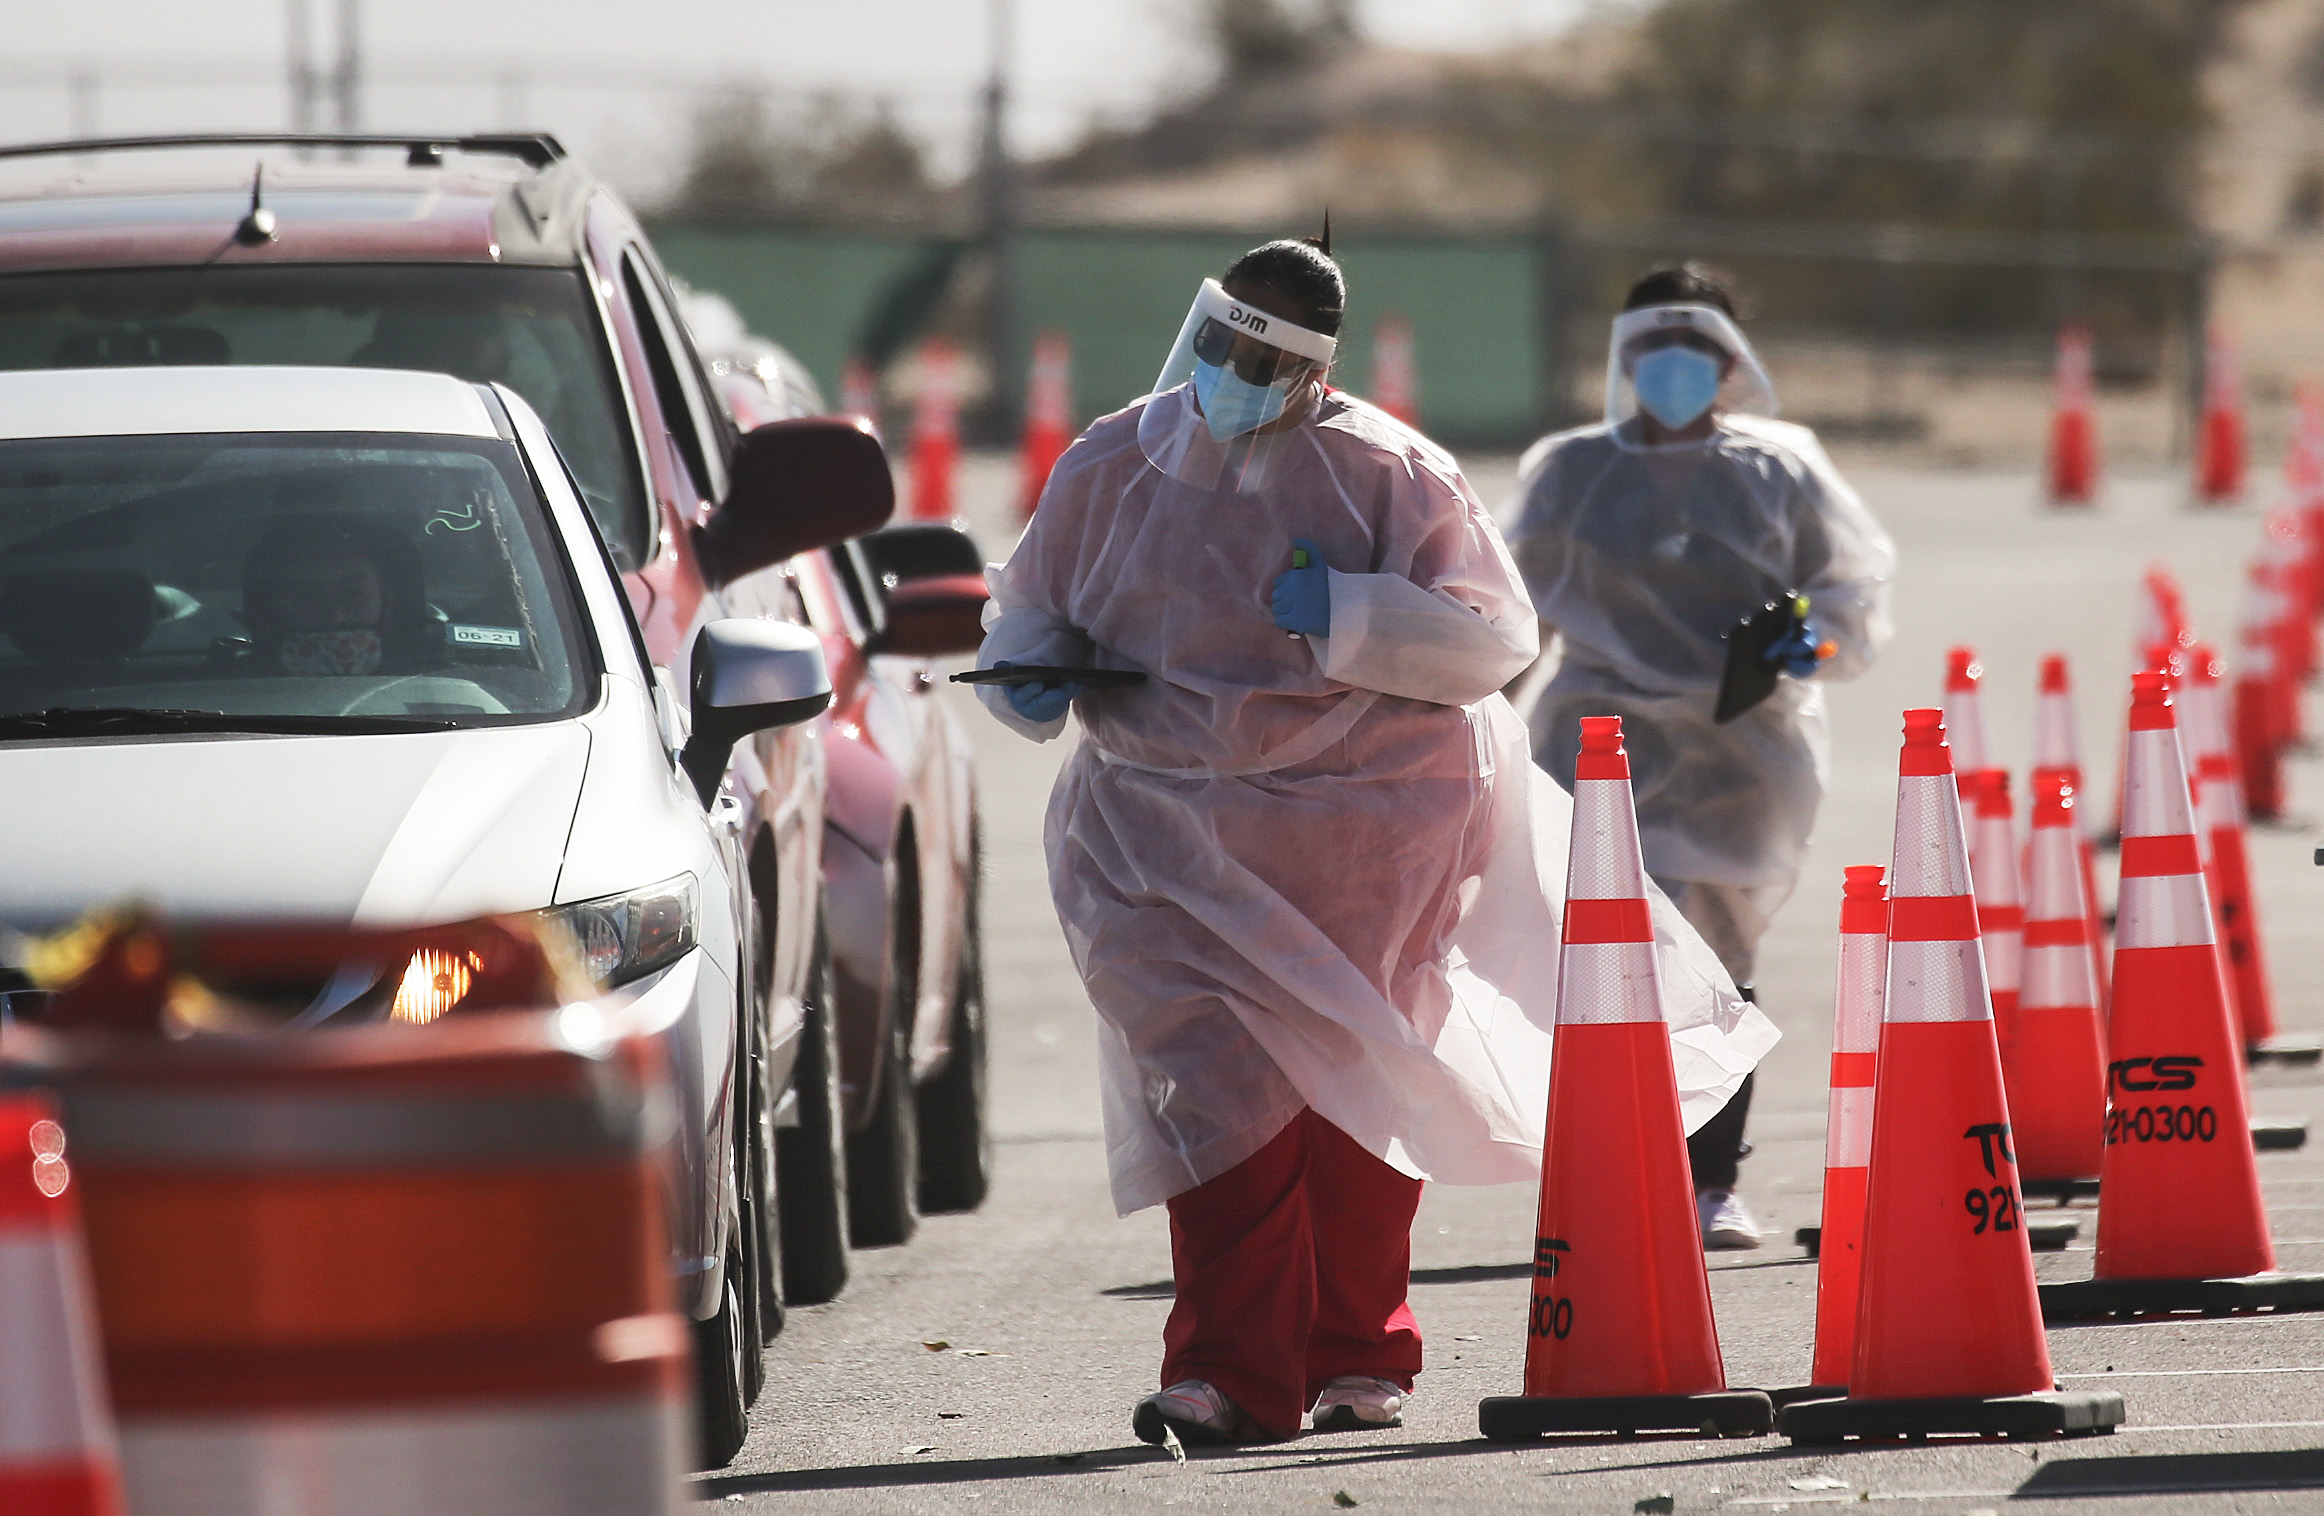 Healthcare workers greet incoming vehicles at a drive-in Covid-19 testing site in El Paso, Texas, on November 14.